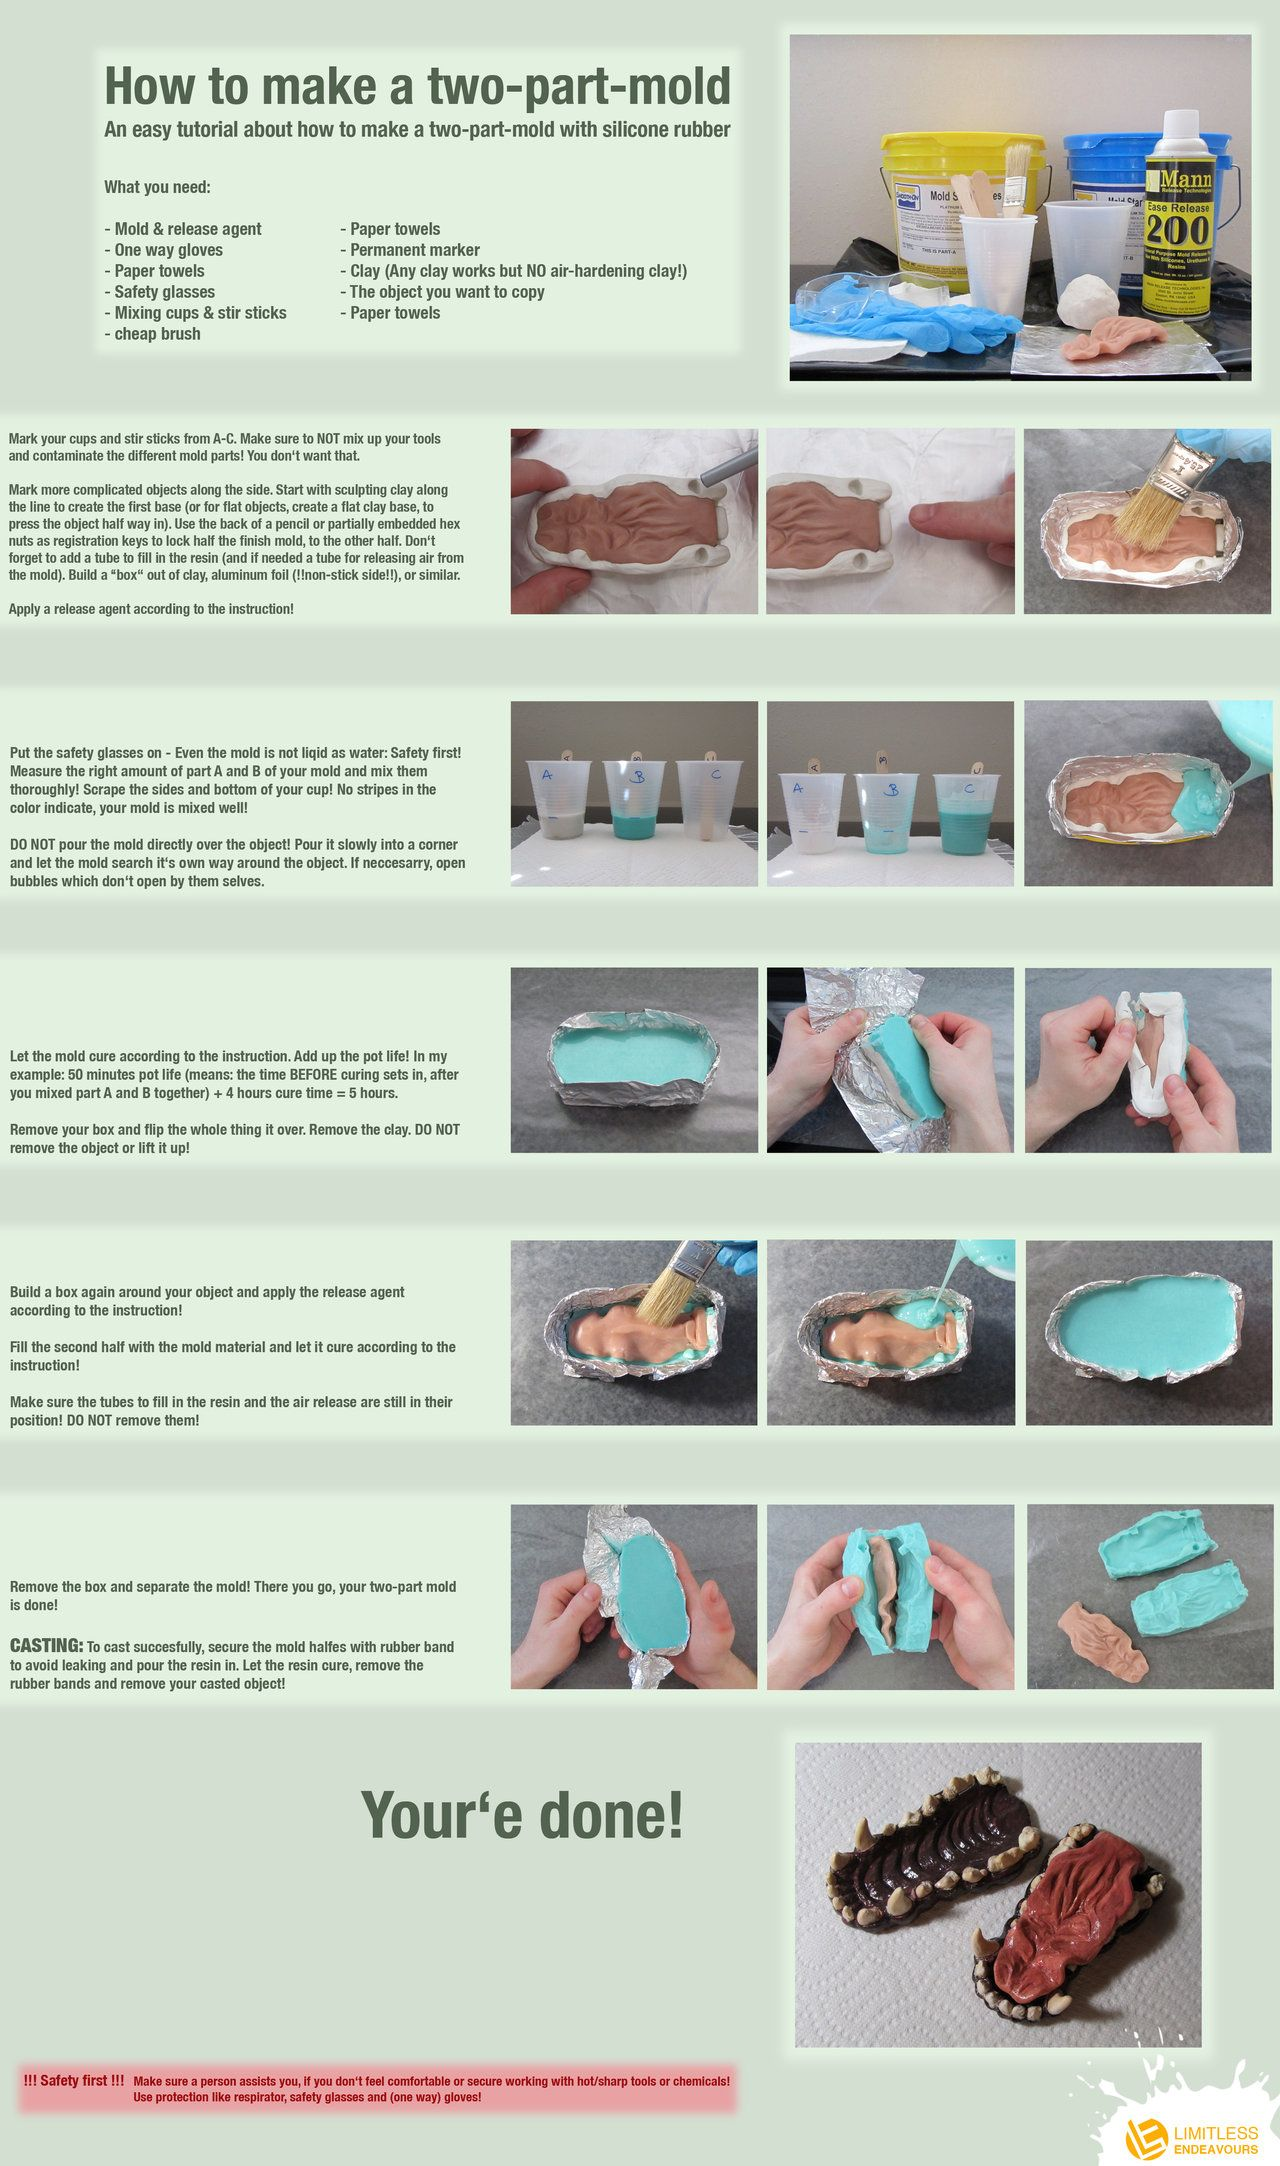 How To Make A Two Part Mold By Limitlessendeavours On Deviantart Resin Diy Diy Silicone Molds Diy Molding